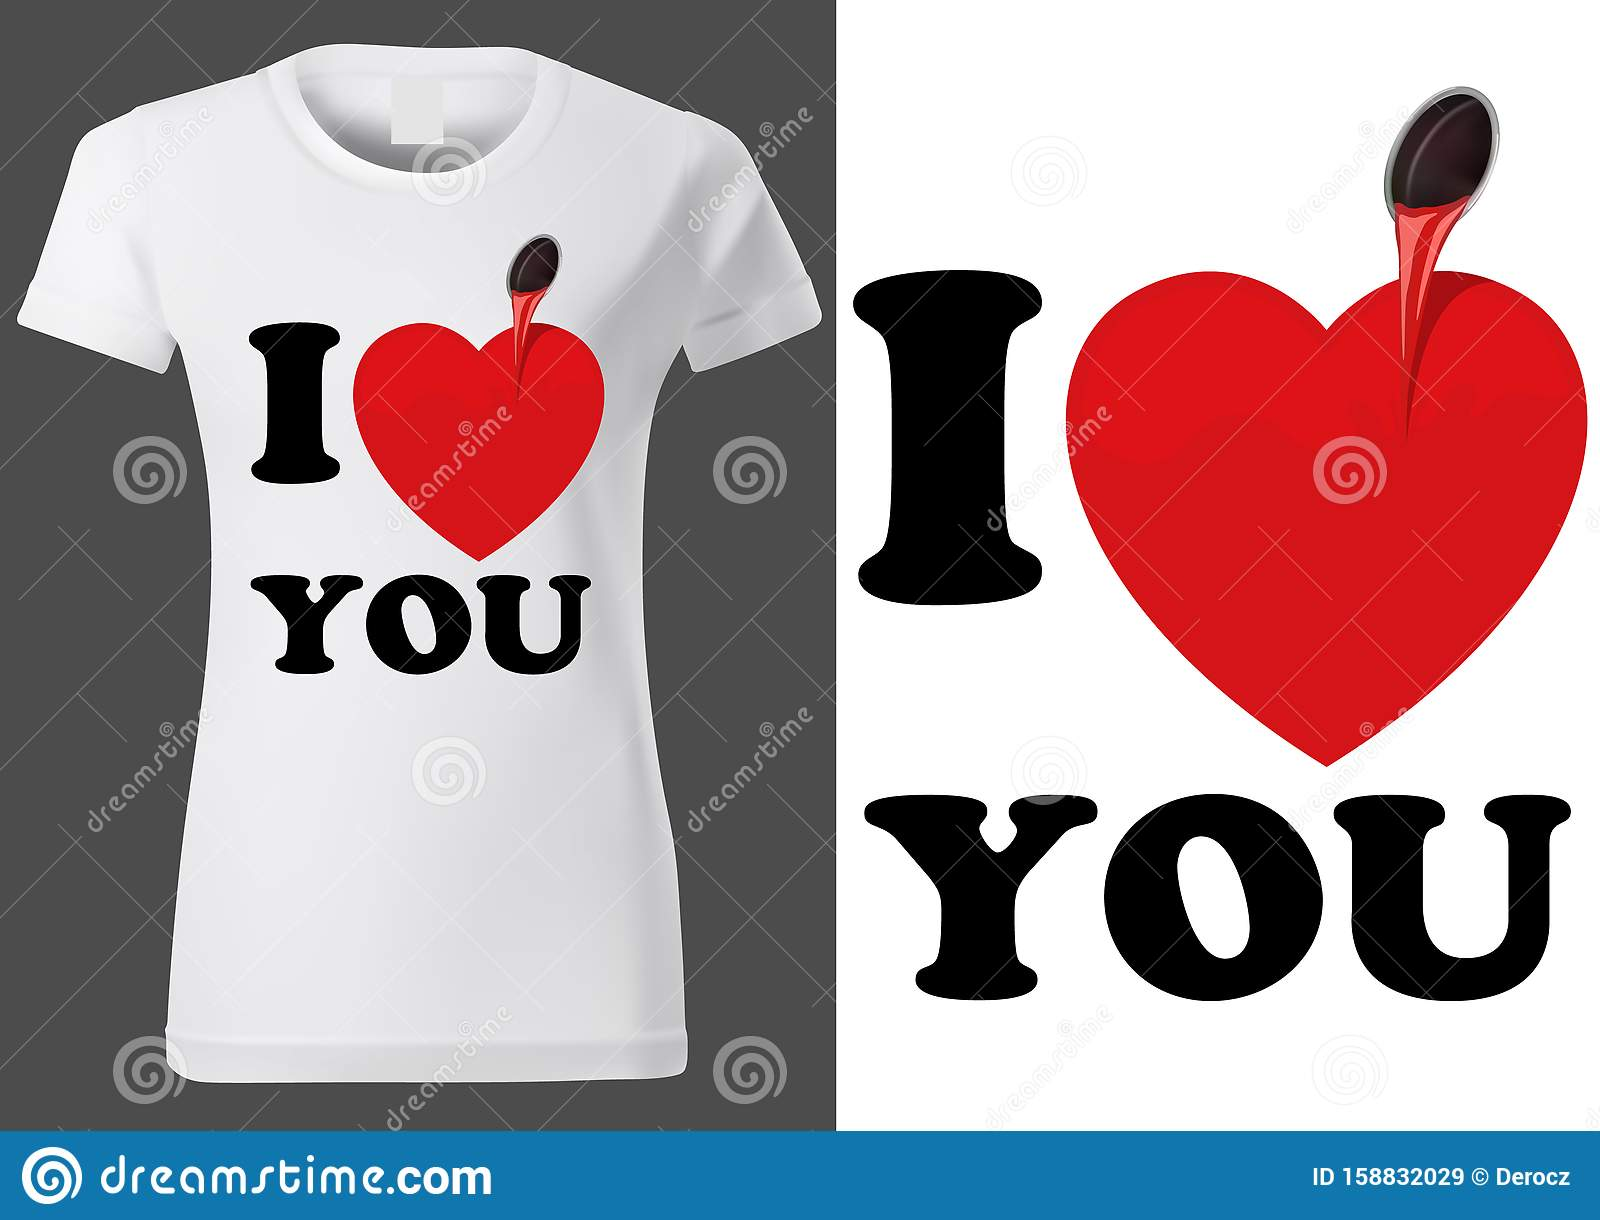 White T Shirt Design With Inscription I Love You Stock Vector Illustration Of Colored Design 158832029